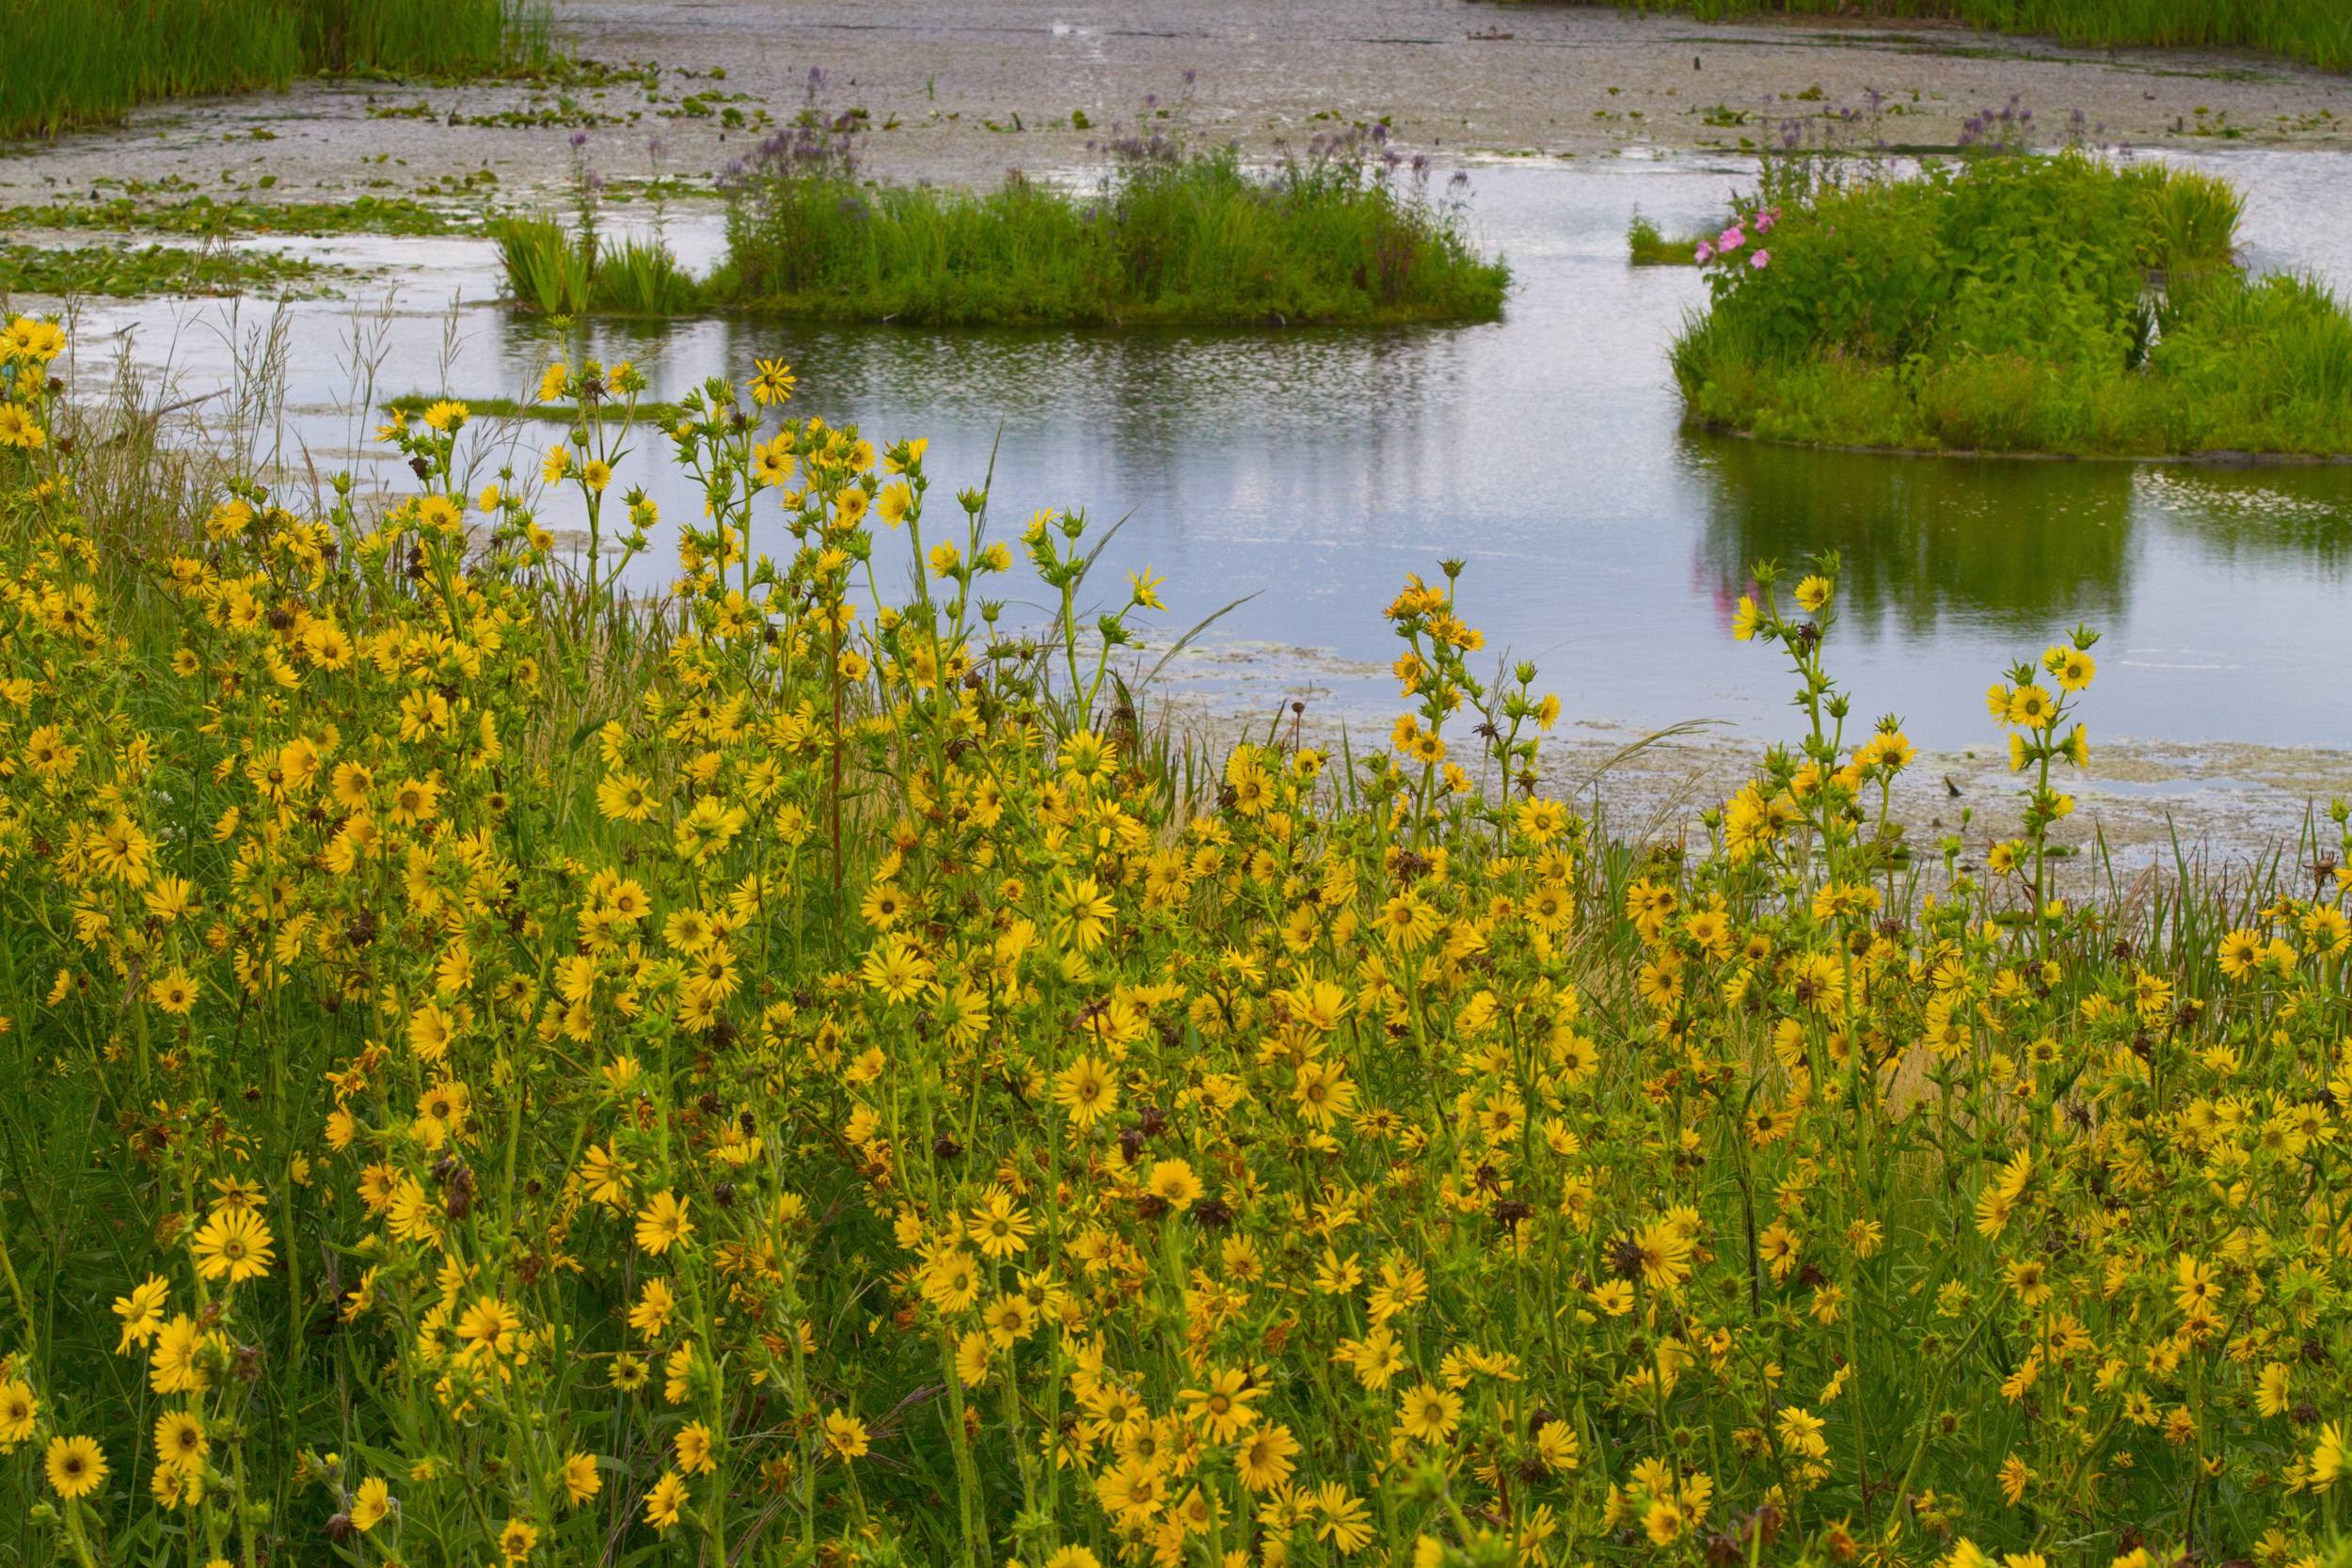 September is a beautiful time to visit Flint Creek Savanna with cooler temperatures and prairie plants in bloom.